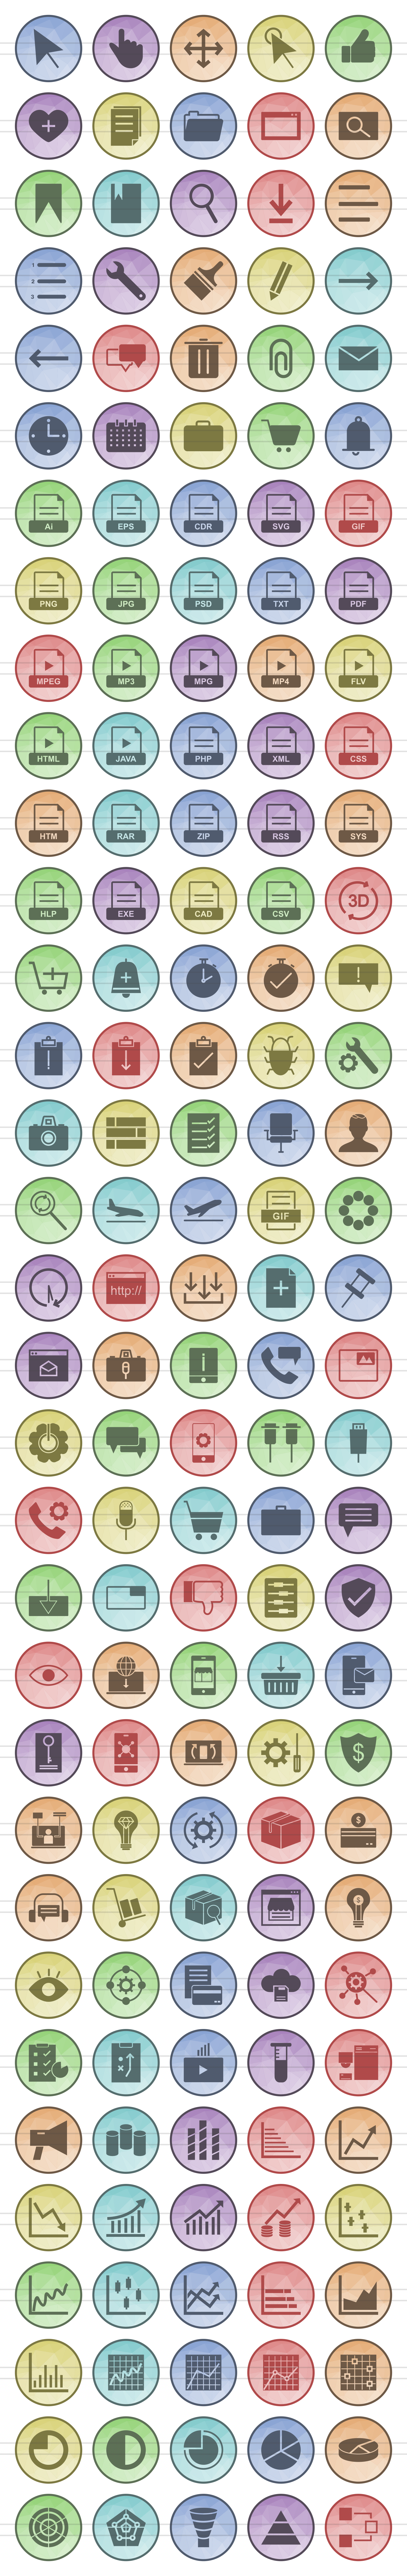 166 Interface Filled Low Poly Icons example image 2